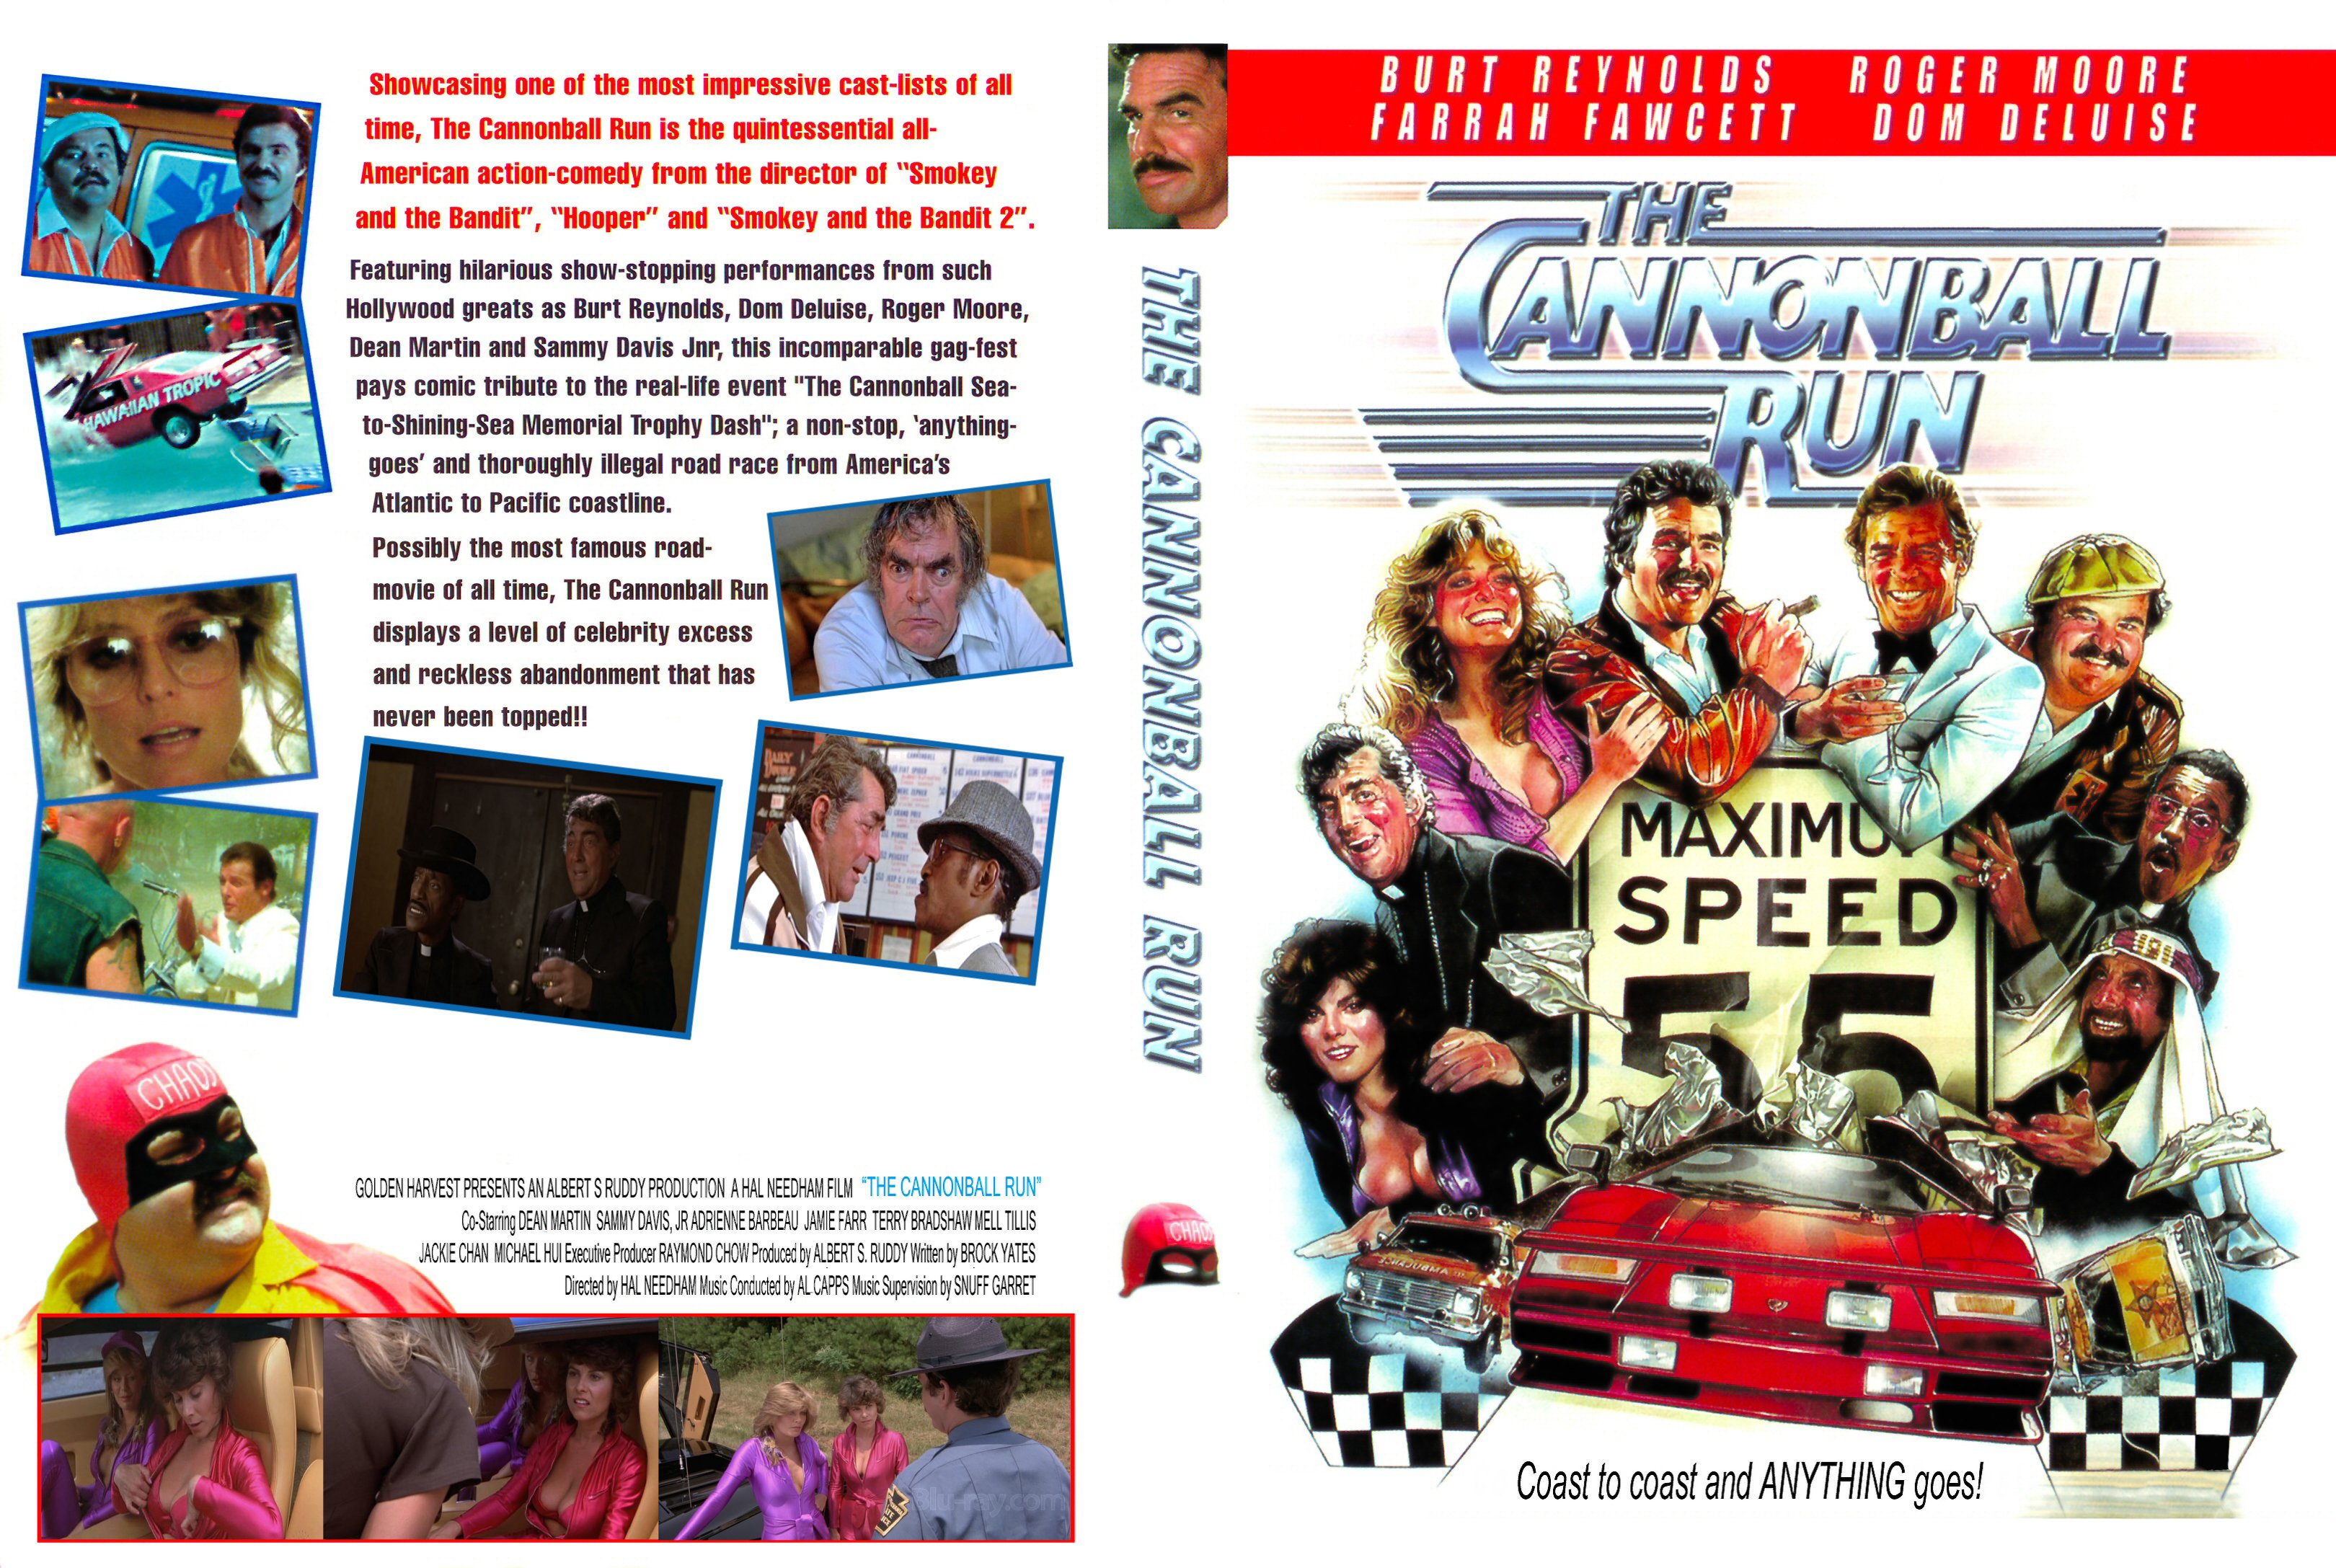 cannonball run 2 free movie download